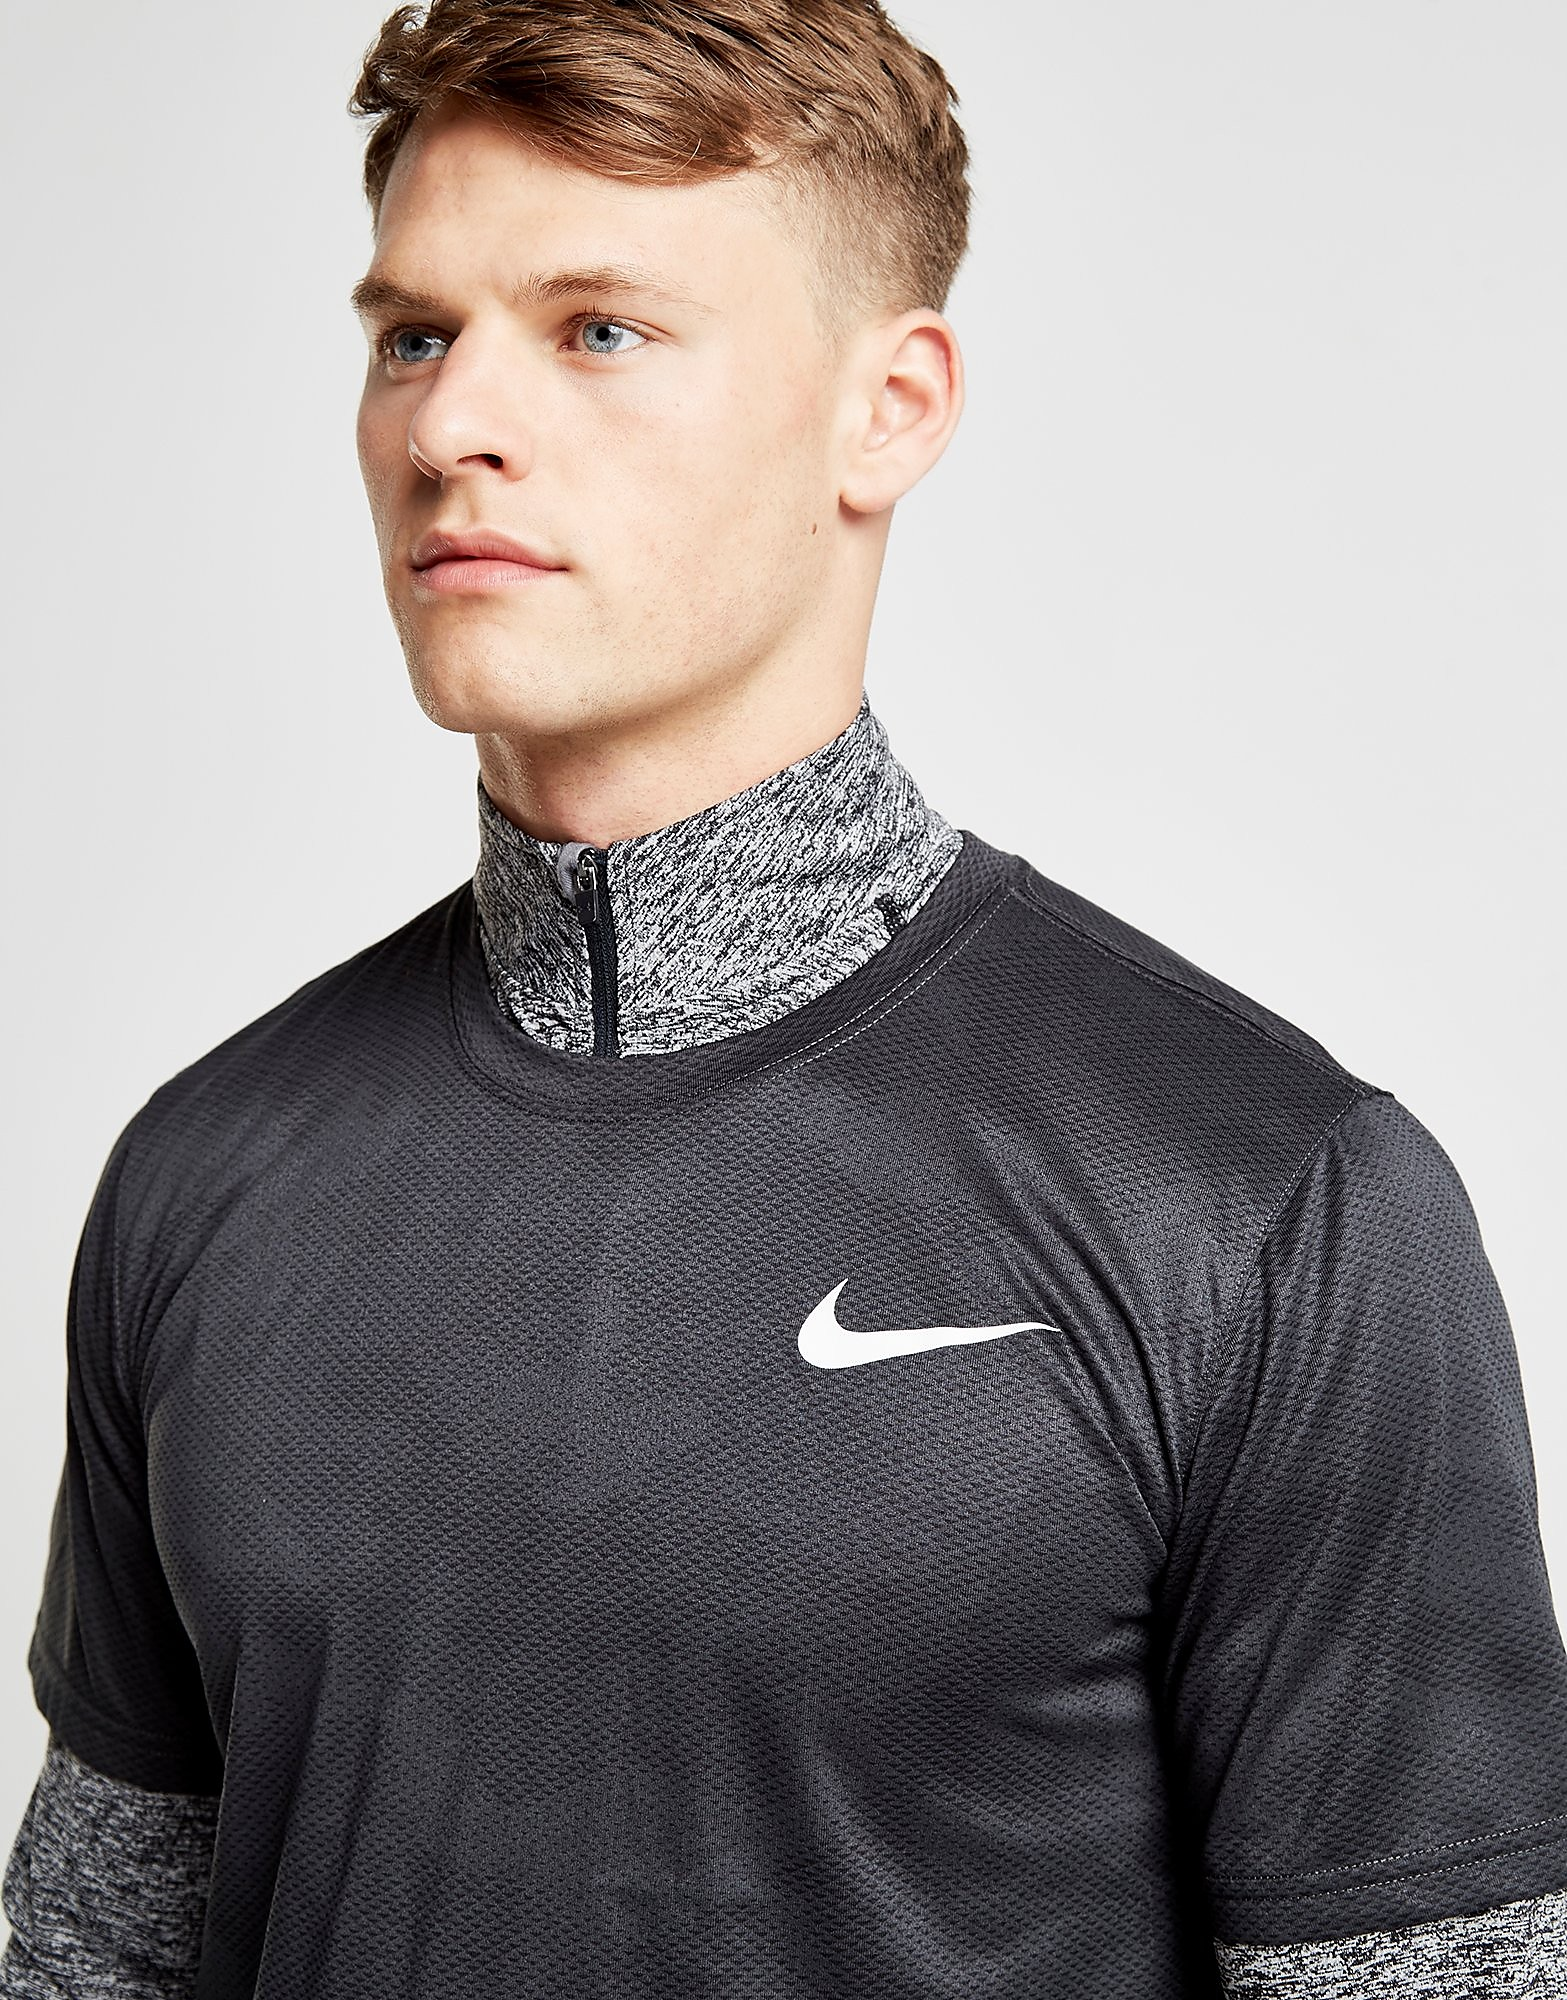 Nike Dri-FIT Camo All Over Print T-Shirt